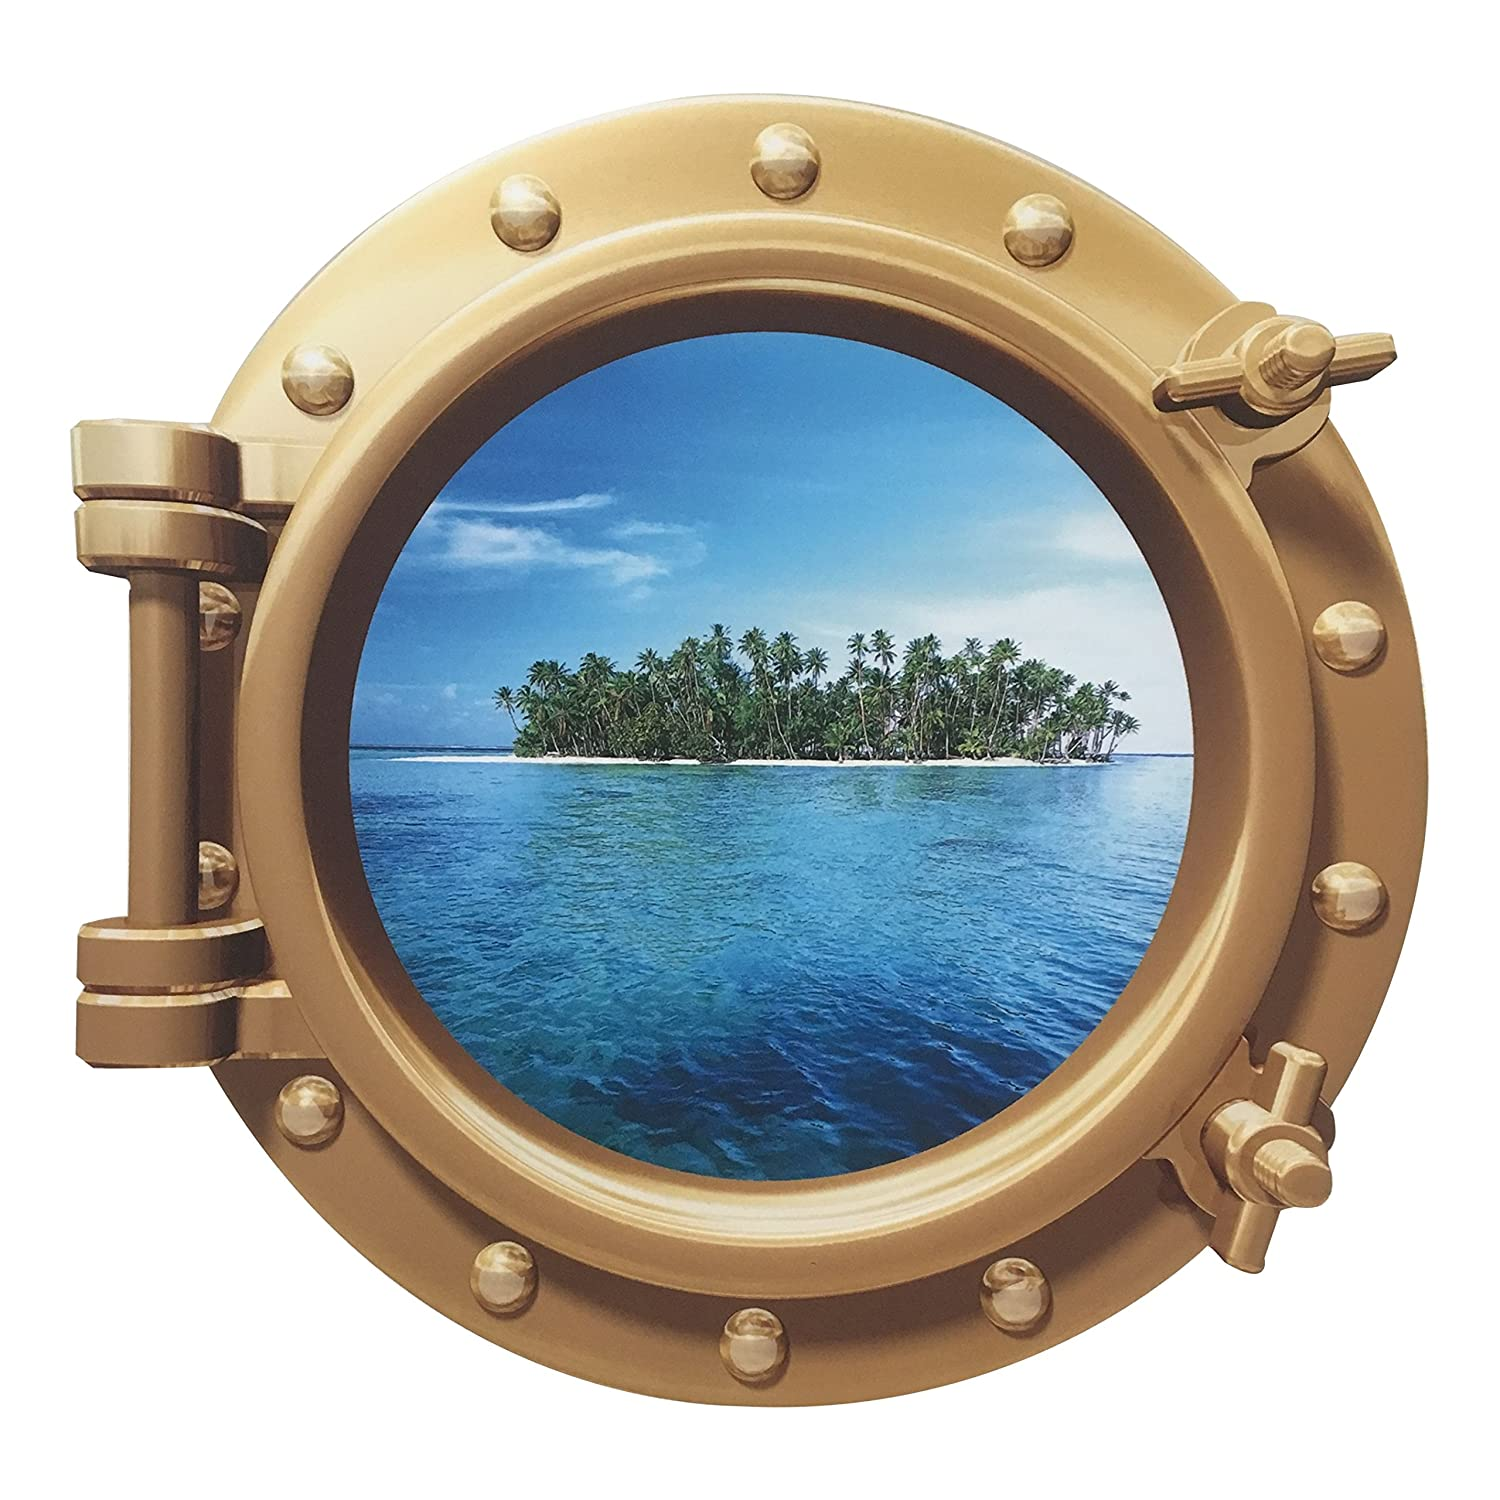 Cruise Ship Porthole Sticker - Easy Peel On Off Decal for Walls, Doors & Other Flat Surfaces